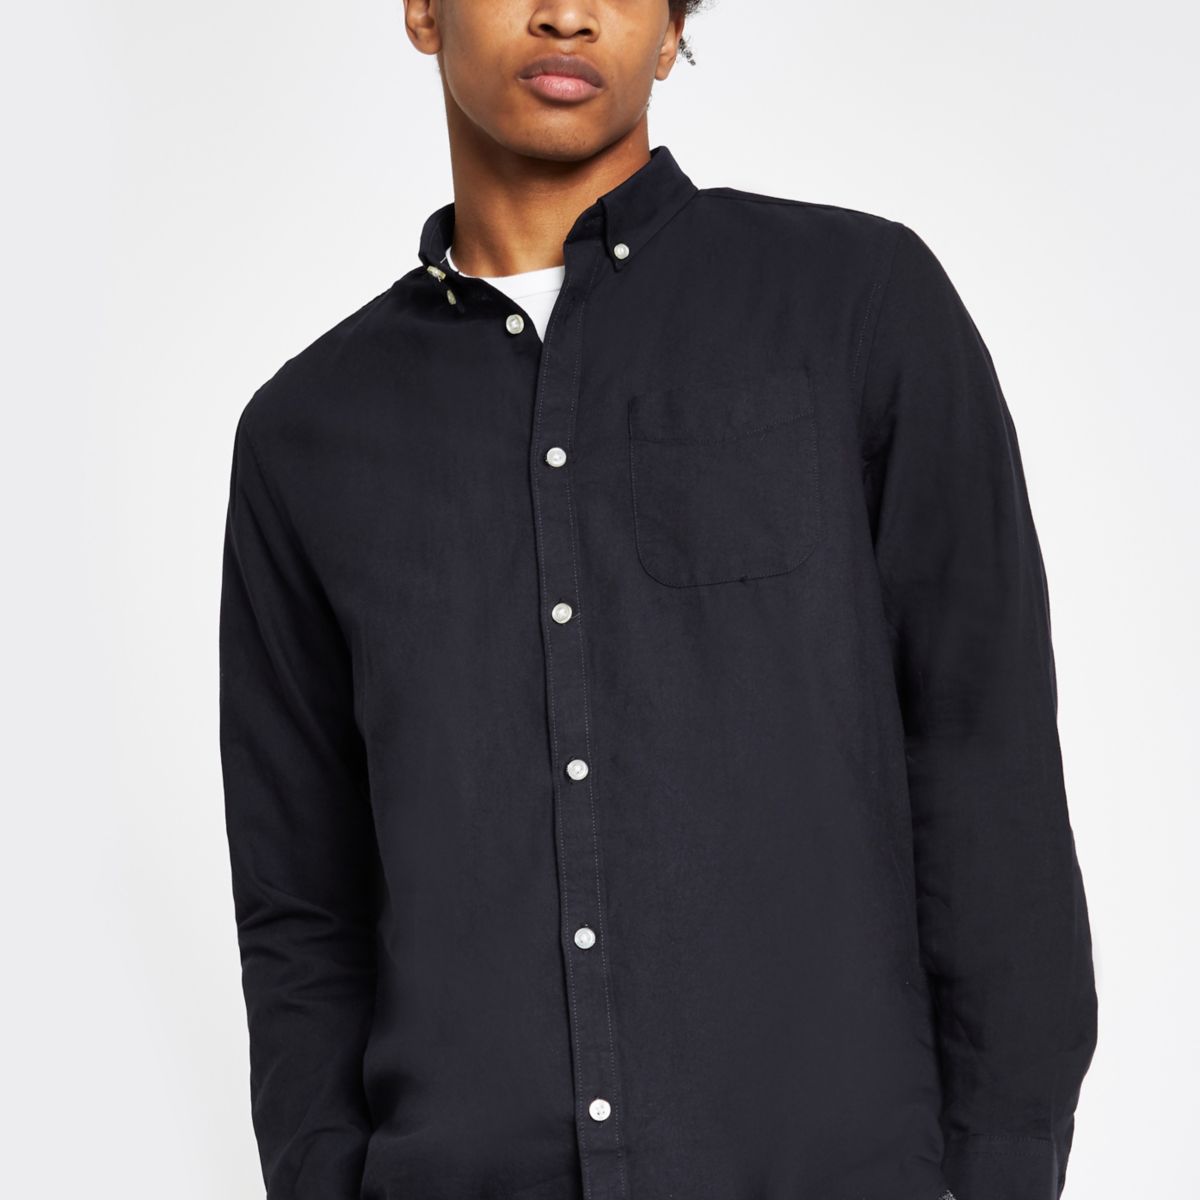 Navy casual Oxford shirt